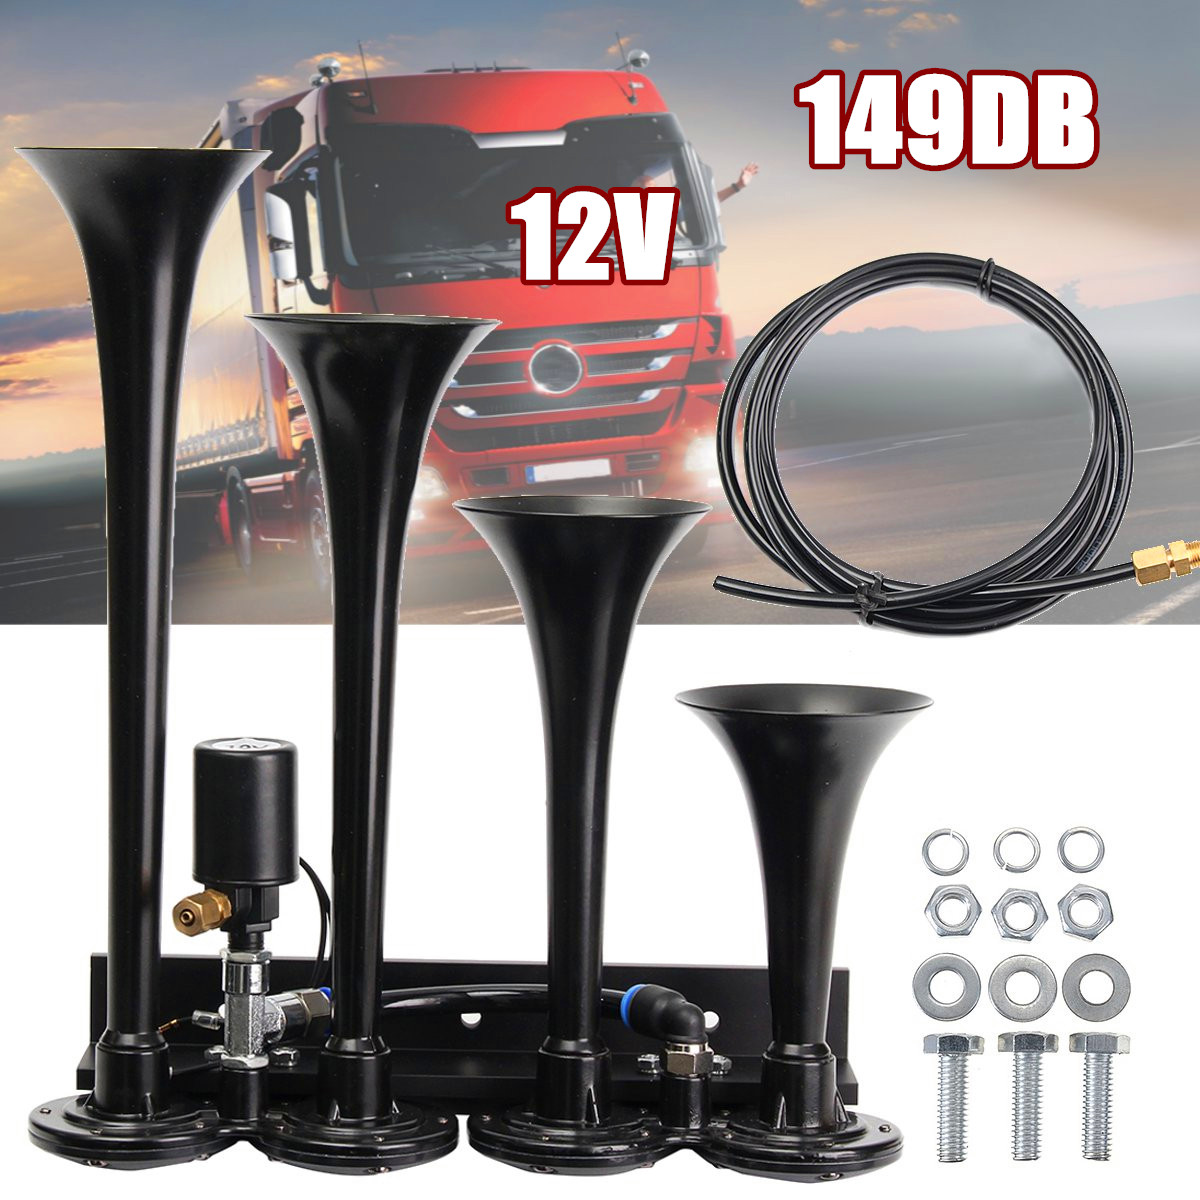 12V 149DB Loud Four Trumpet Train Air Horn Kits VXH4124B For Car Truck Boat Vehicle Train 340mm 155mm12V 149DB Loud Four Trumpet Train Air Horn Kits VXH4124B For Car Truck Boat Vehicle Train 340mm 155mm